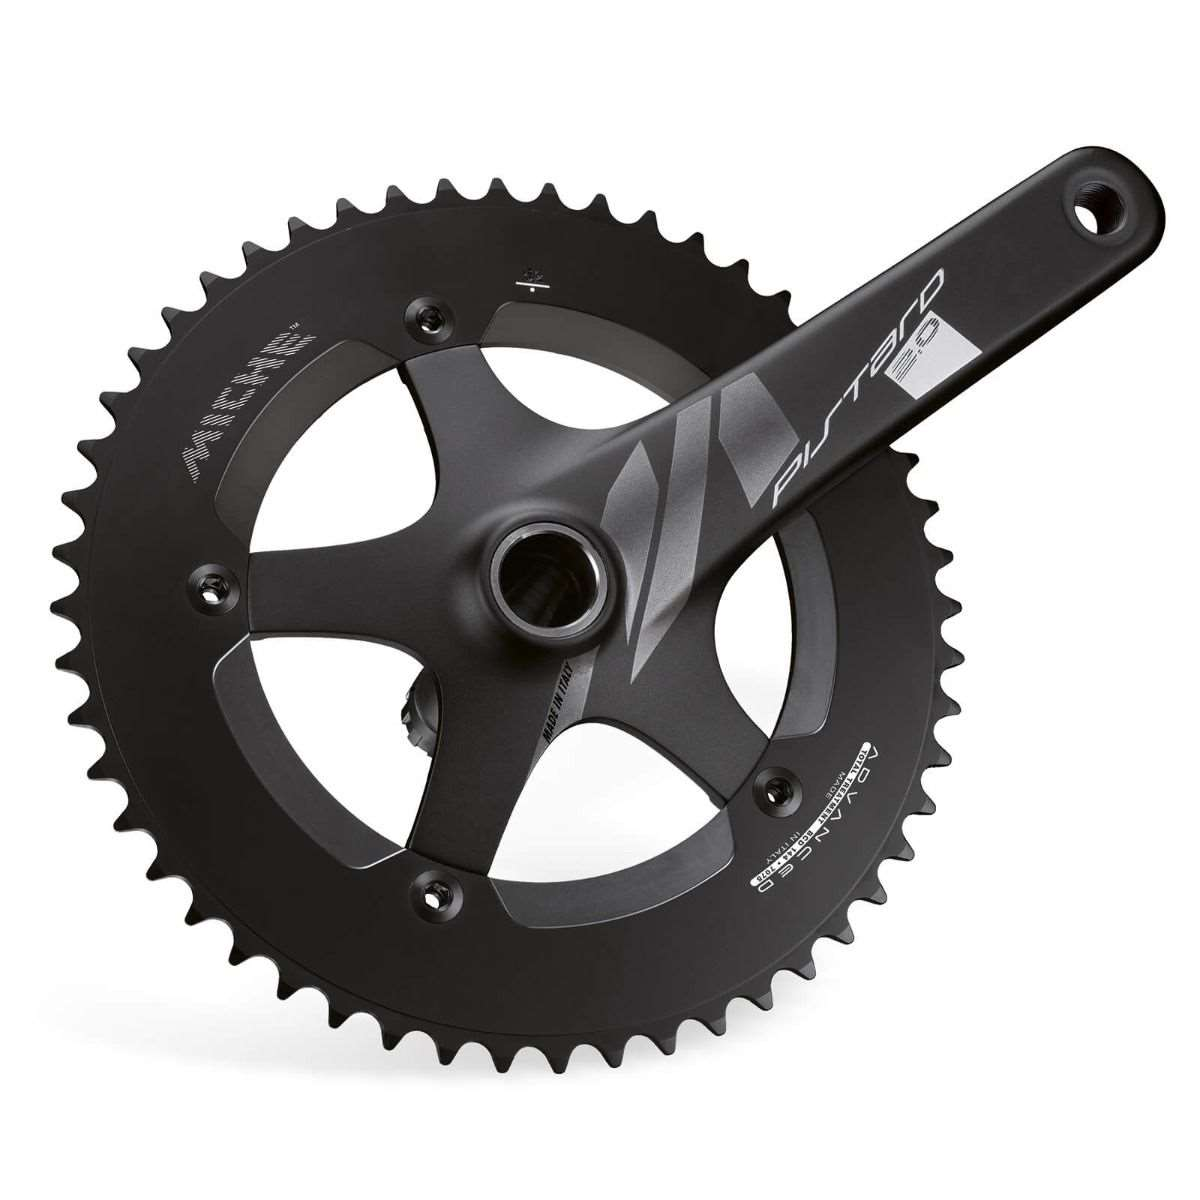 GUARNITURA PISTARD 2.0 165 47T BLACK